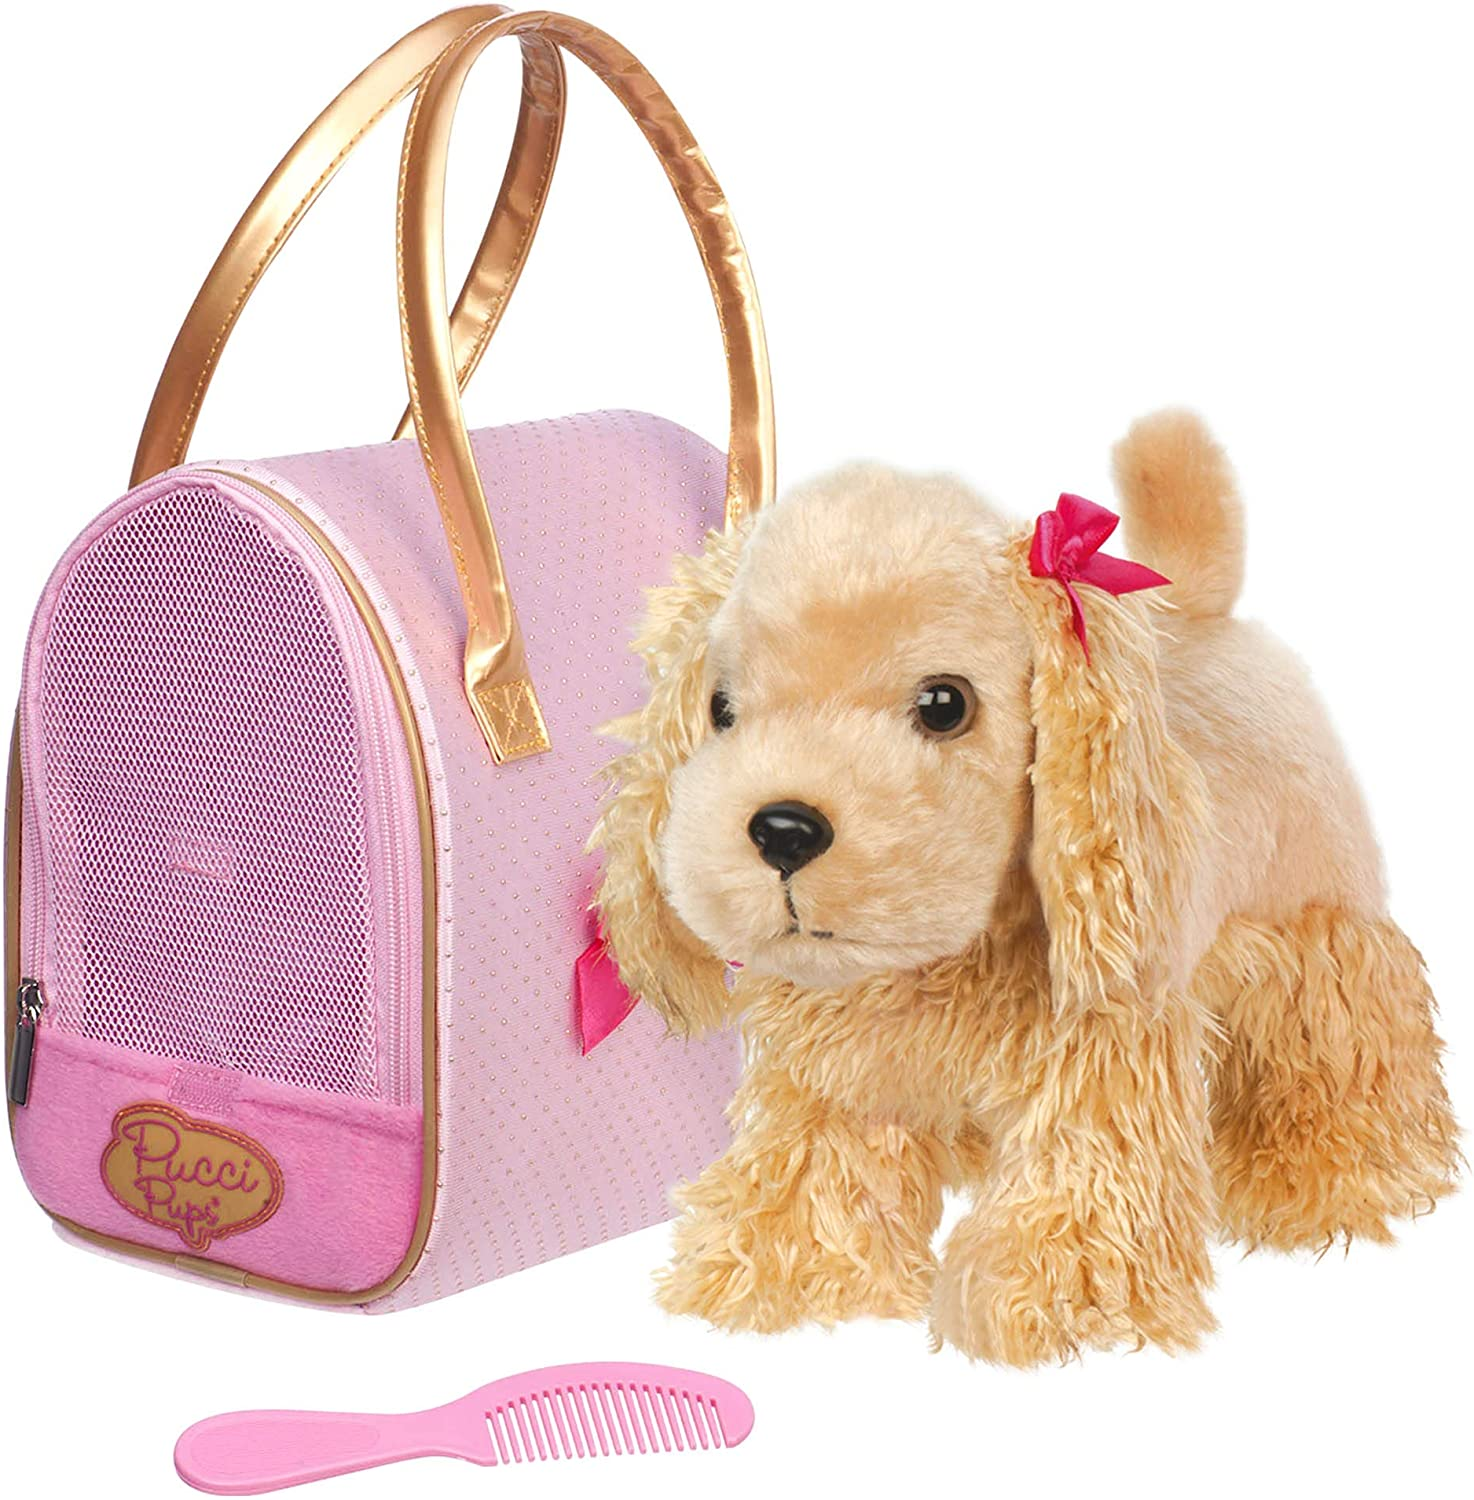 Pucci Pups by Battat – Cocker Spaniel Stuffed Puppy with Pink and Gold Dotted Stuffed Animal Bag